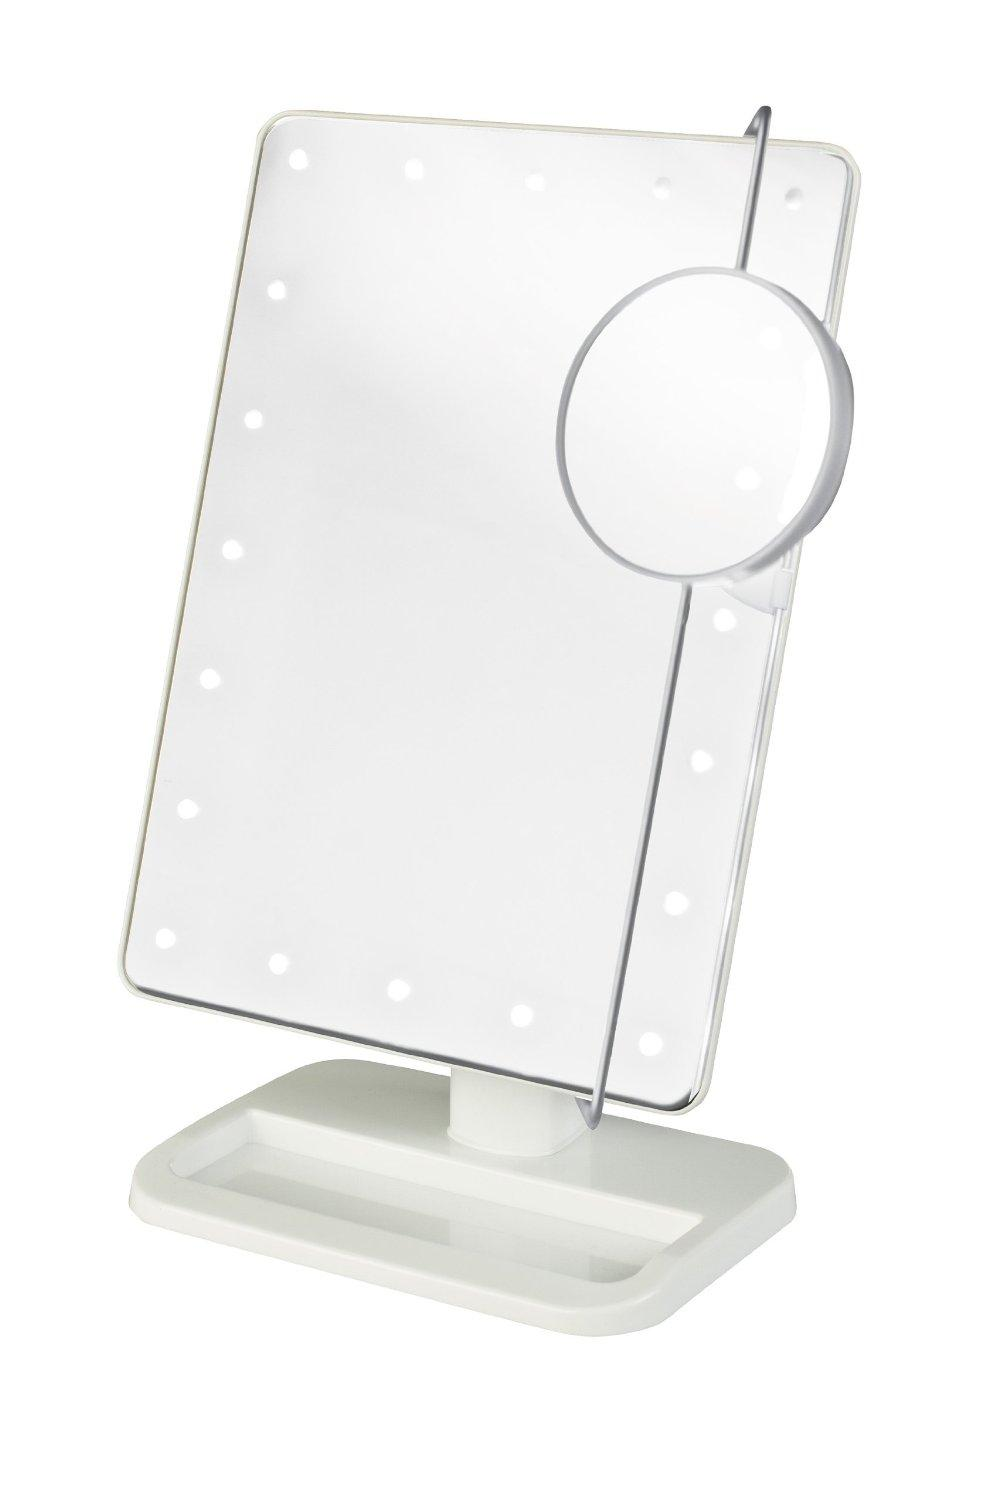 Double Sided Lighted Mirror | Conair Lighted Makeup Mirror | Conair Mirror Light